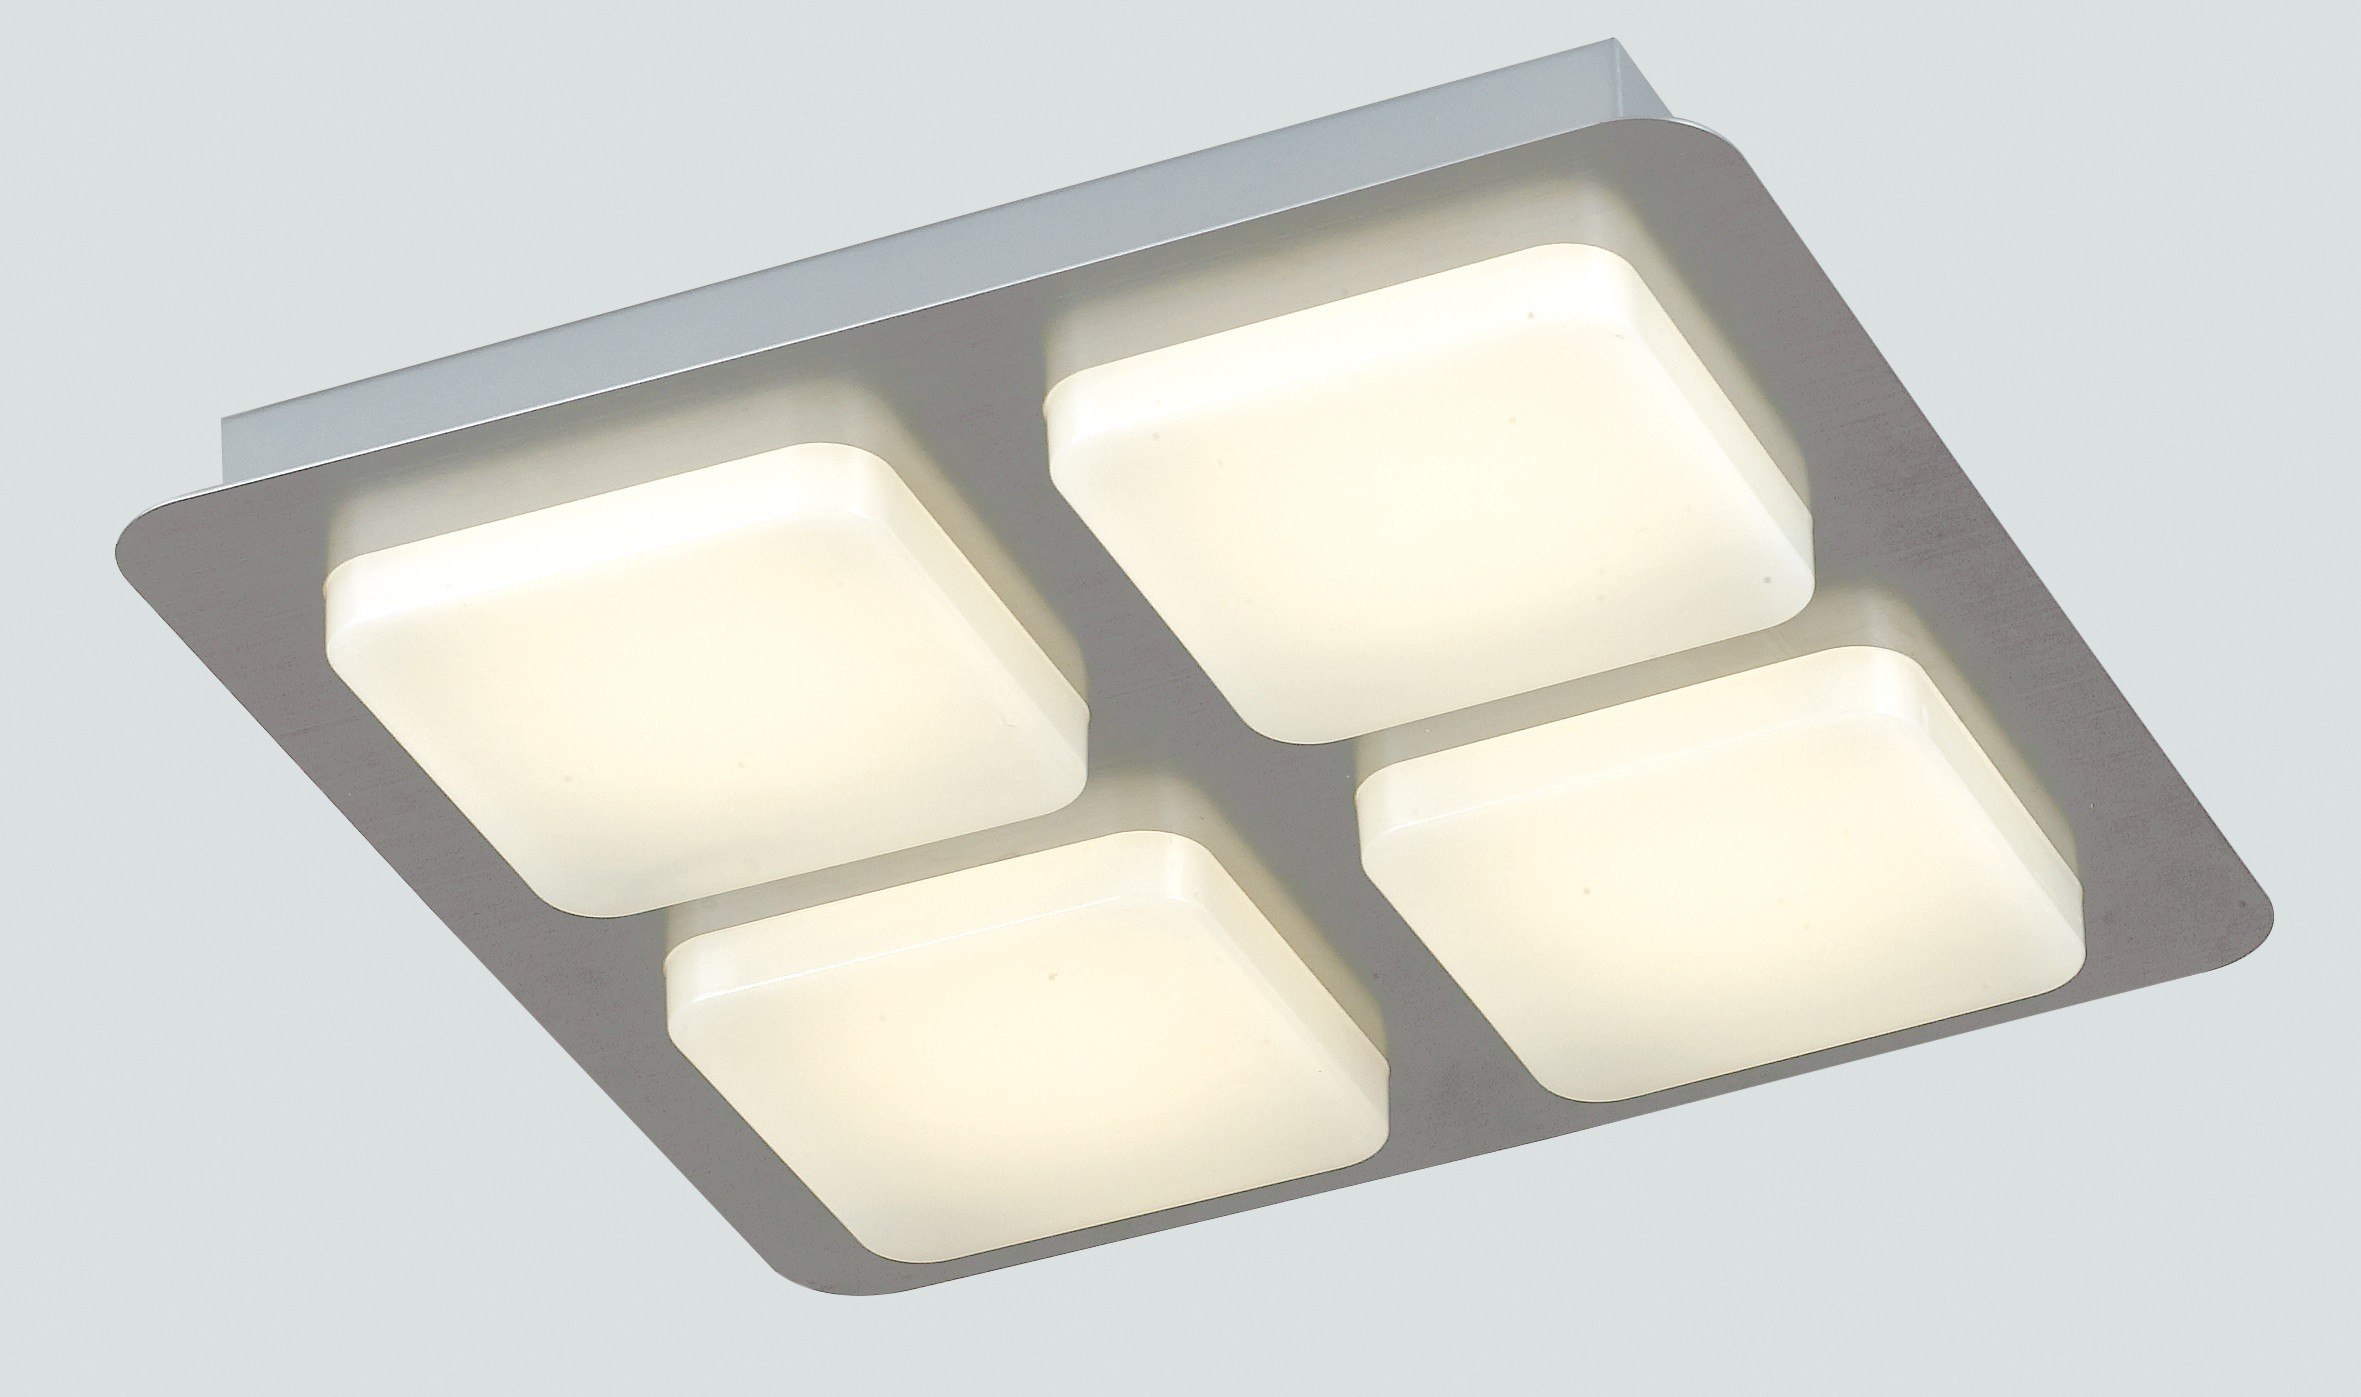 Plafoniera Muro Led : Led madison q4 8031440357906 fan europe lighting plafoniera quadrata